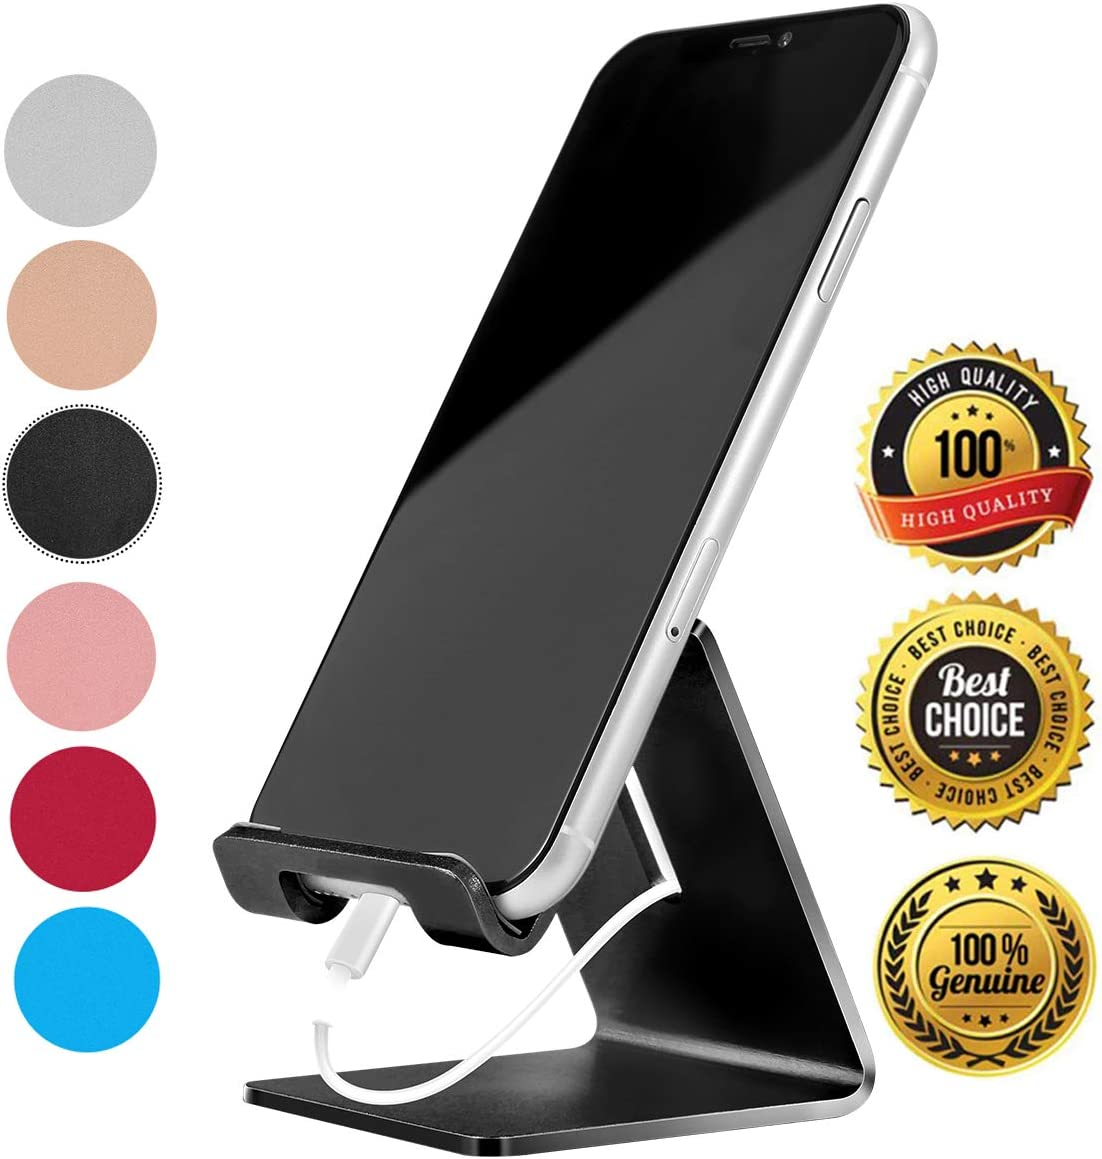 Desk Cell Phone Stand Holder Aluminum Phone Dock Cradle Compatible with Switch, All Android Smartphone, for iPhone 11 Pro Xs Xs Max Xr X 8 7 6 6s Plus 5 5s 5c Charging, Accessories Desk (Black)